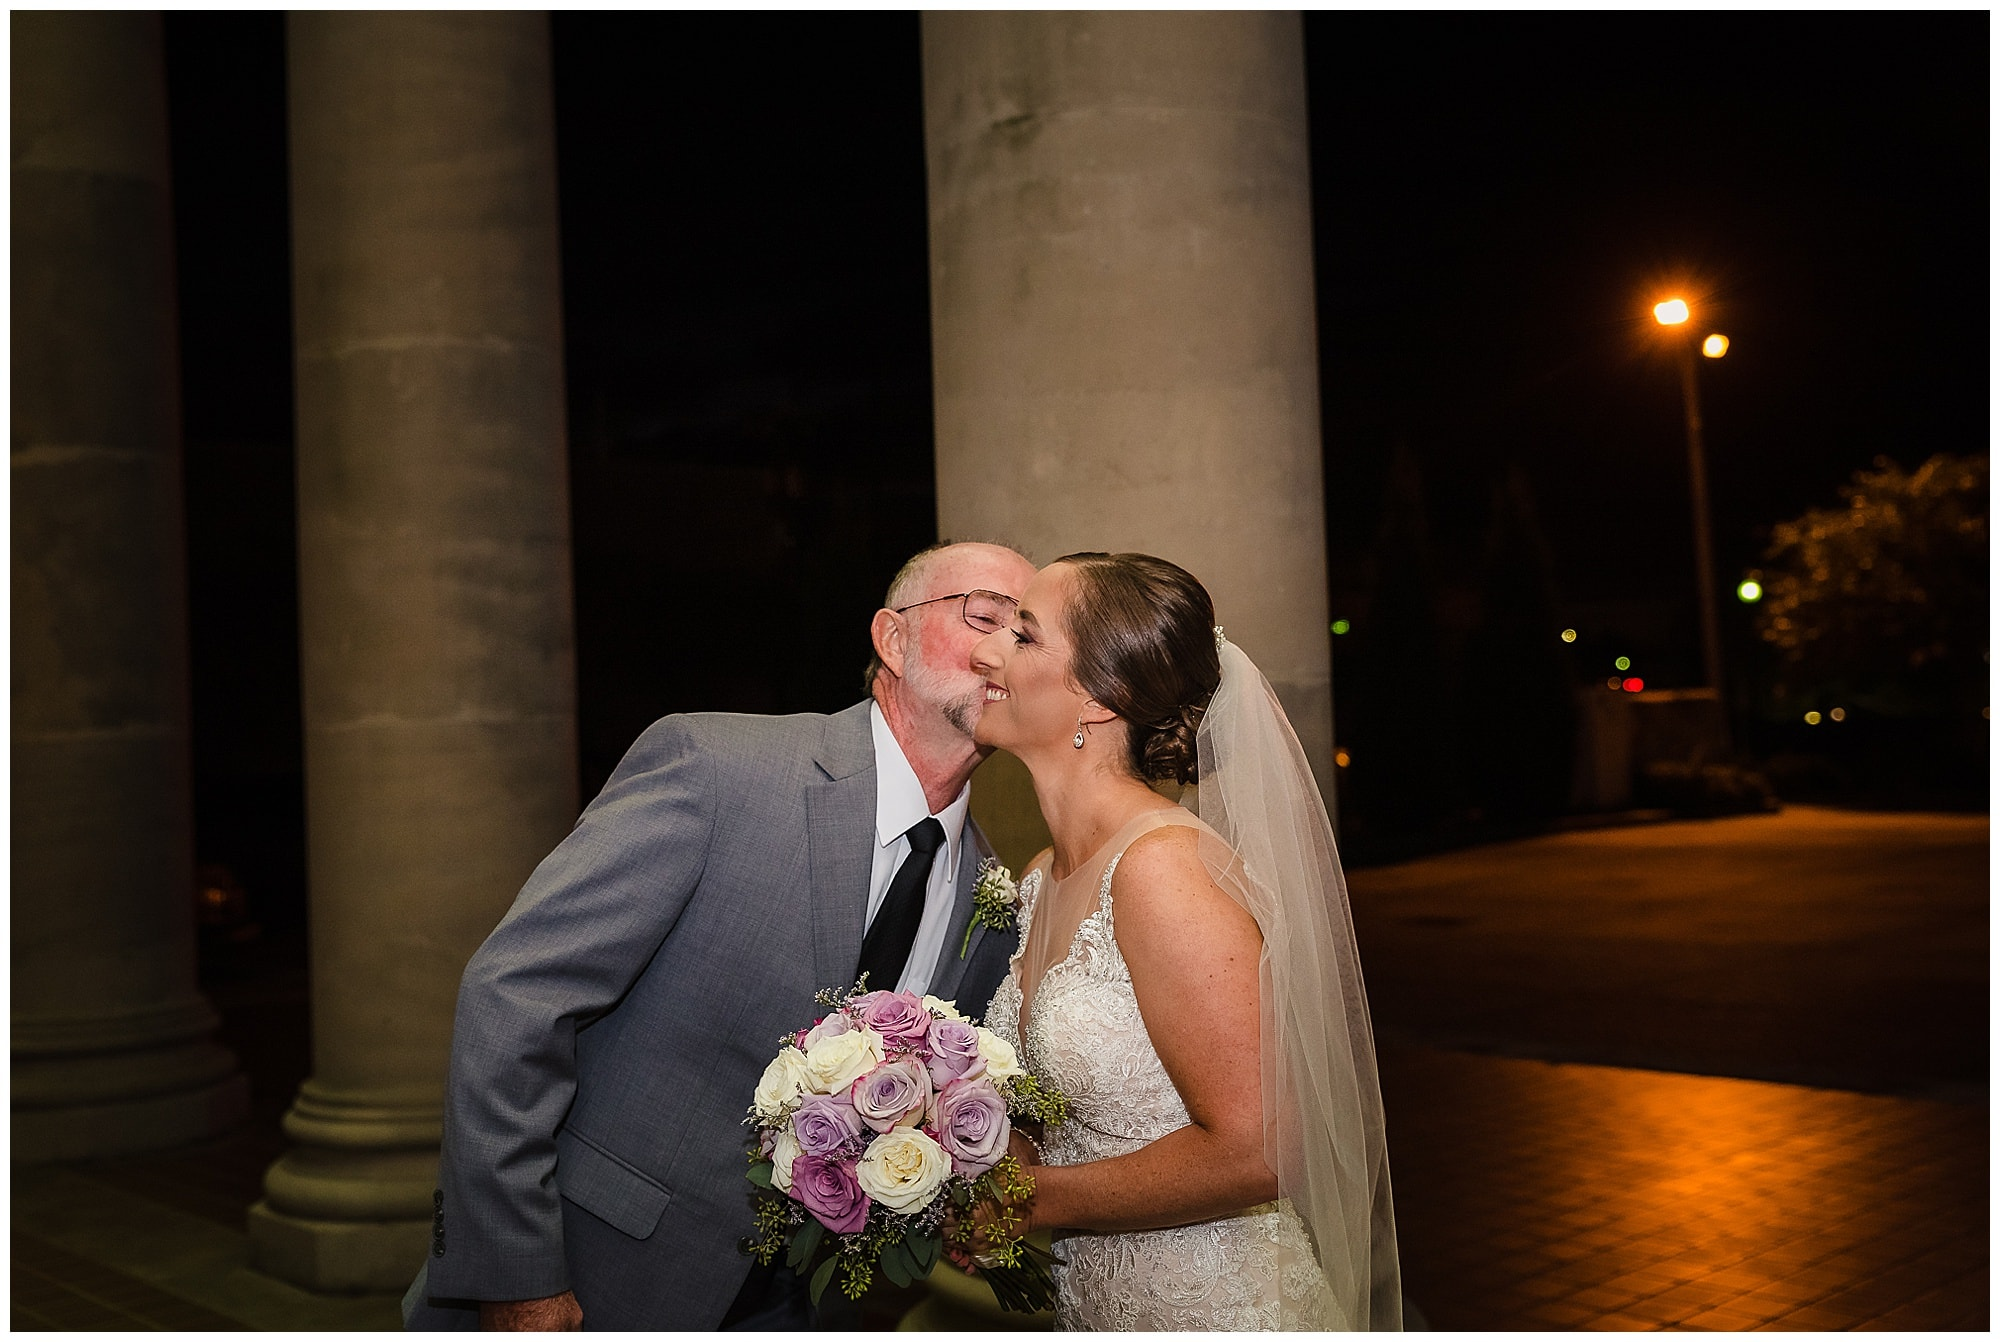 Father of the bride kissing bride before ceremony